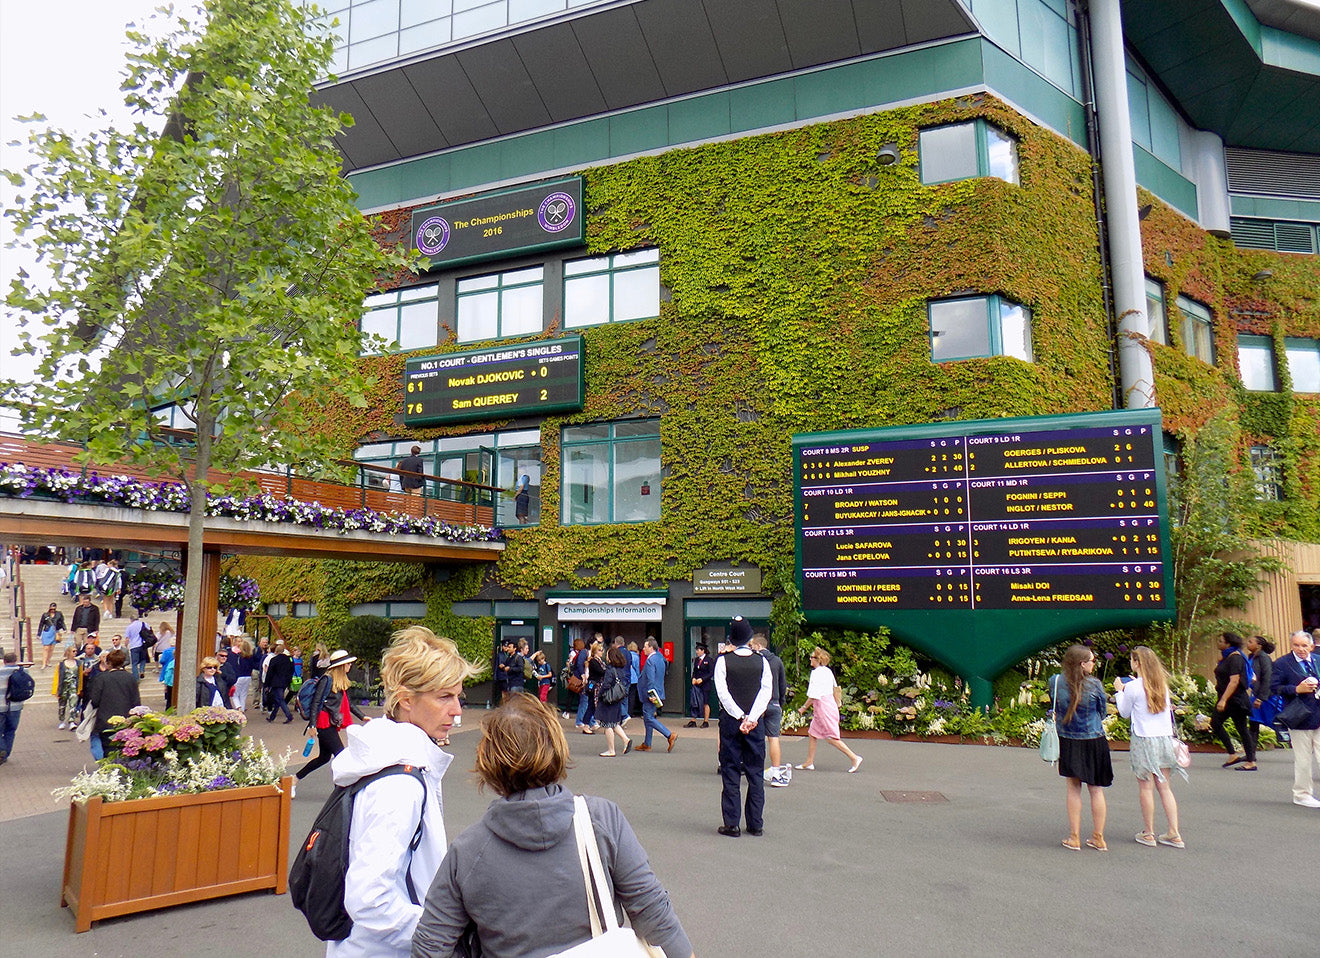 Wimbledon complex including Centre court building